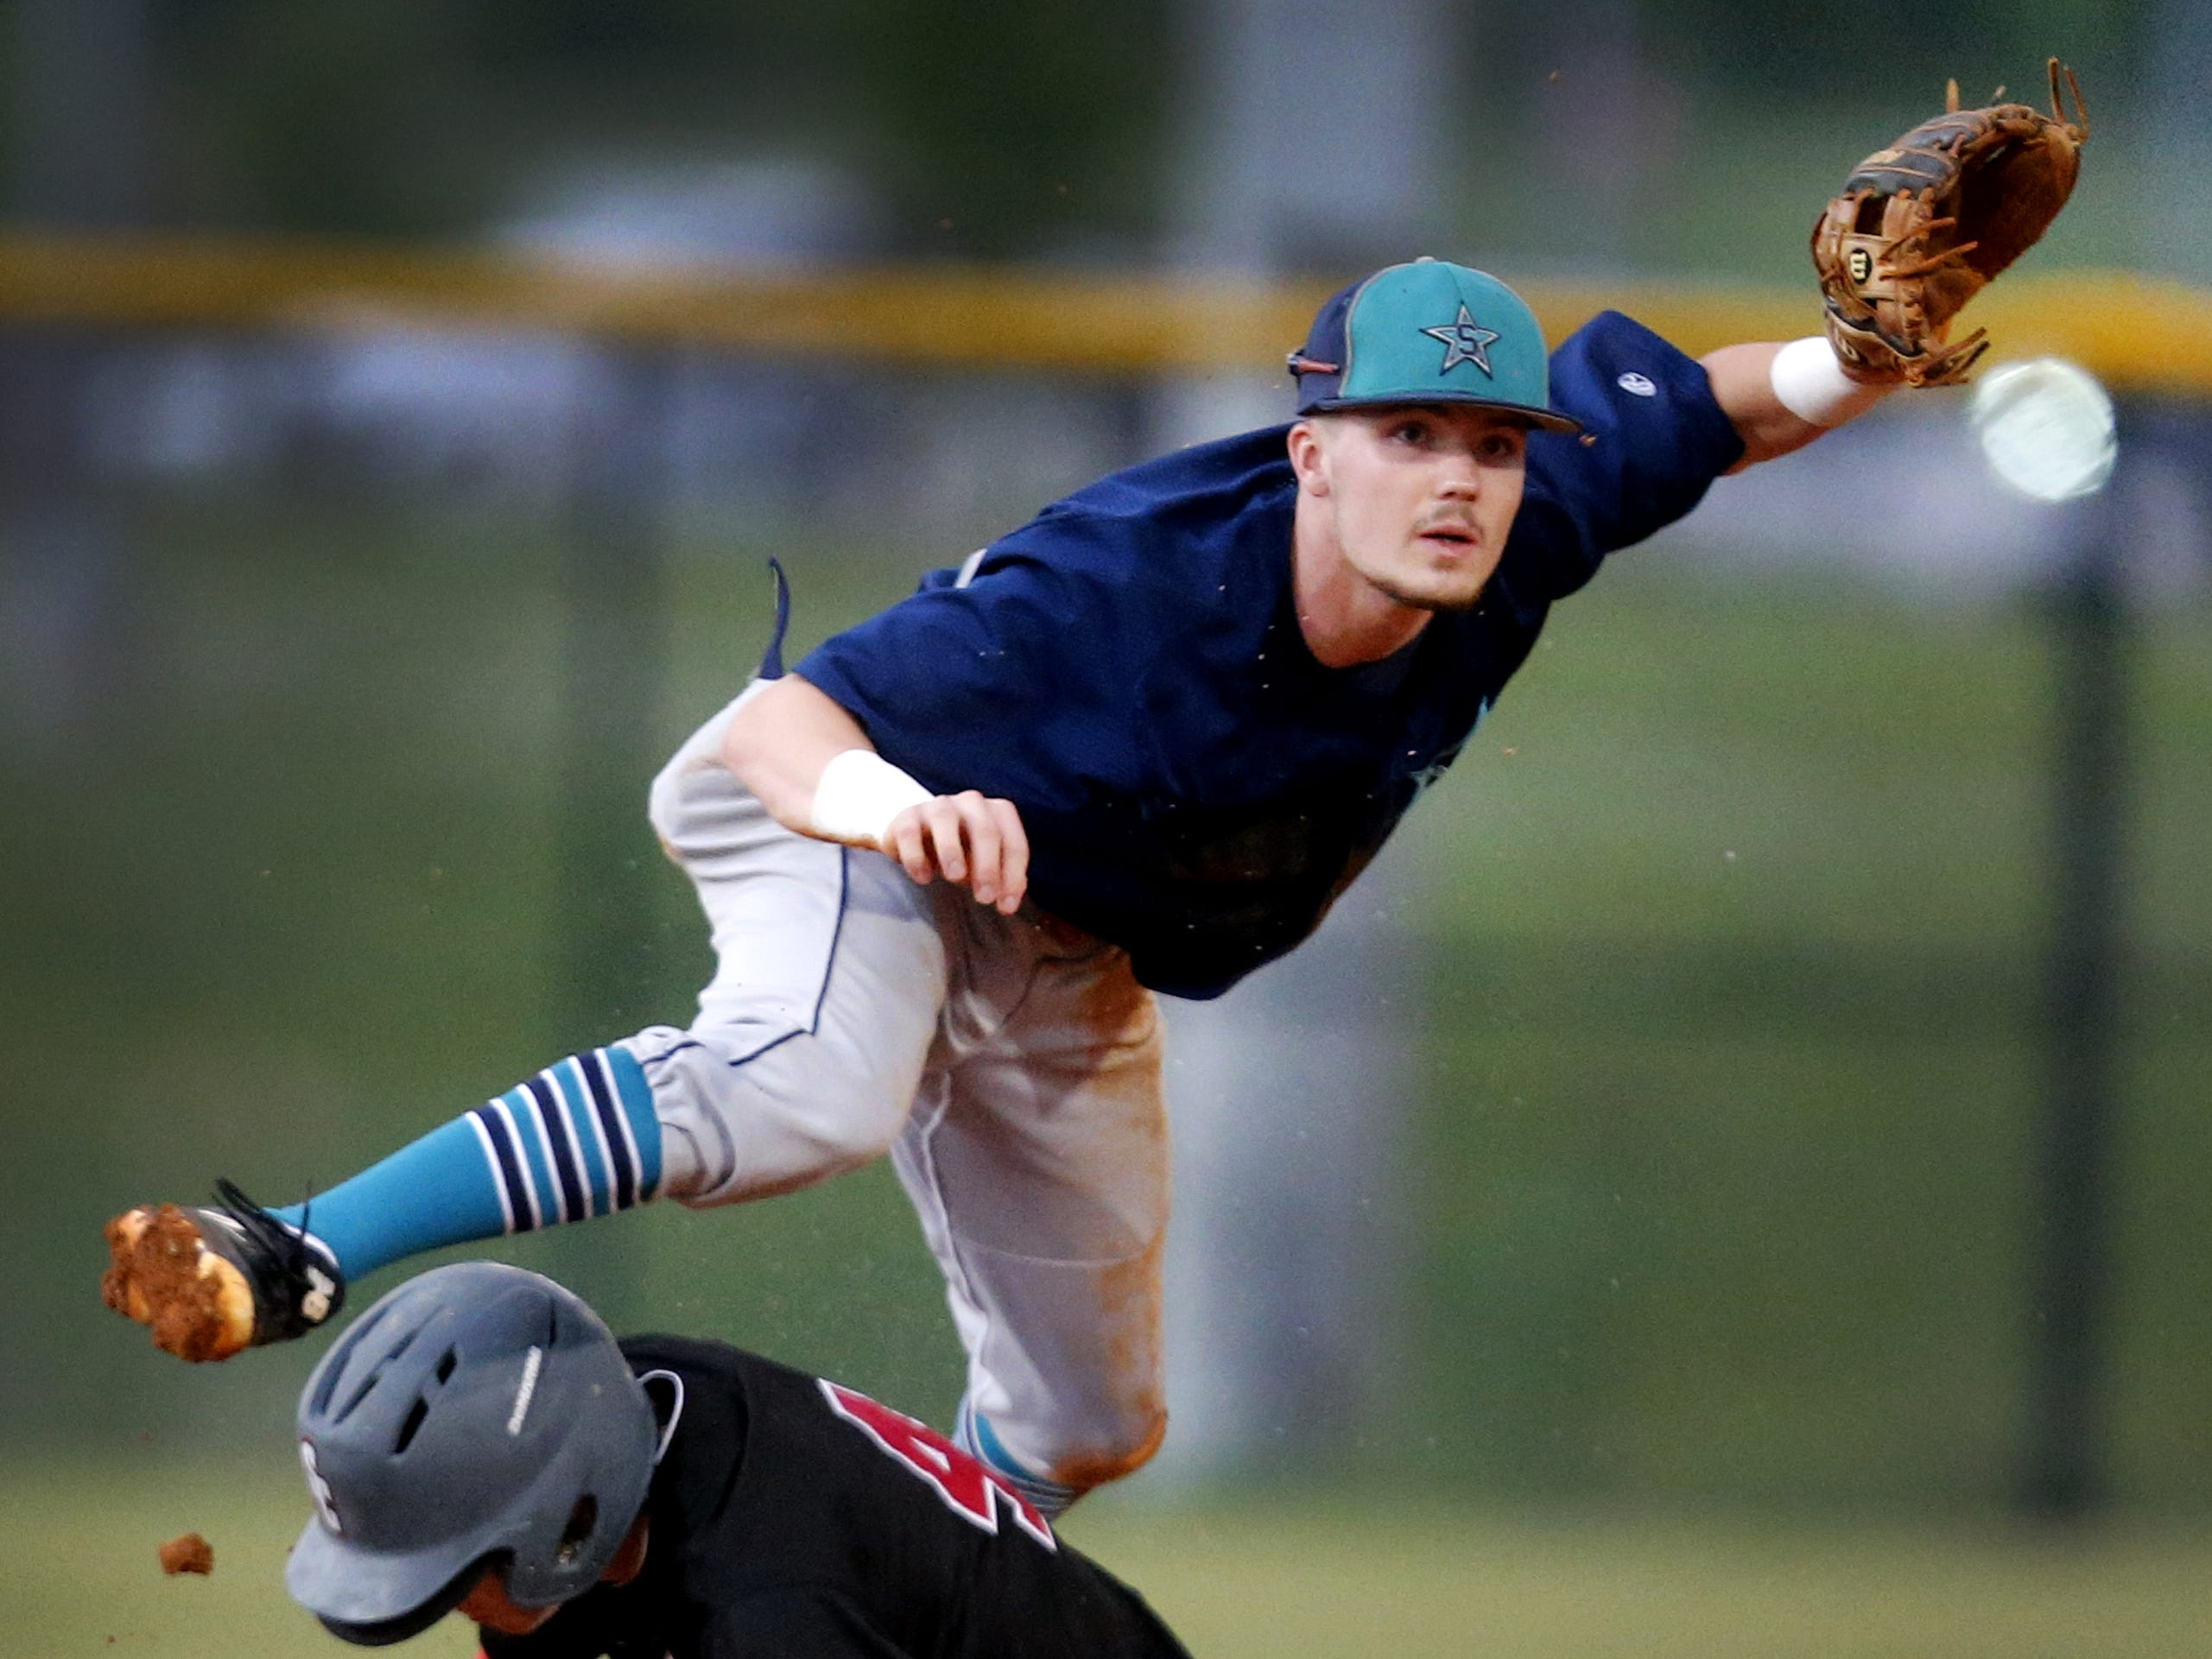 Siegel's Zach Bondurant (26) jumps over Stewarts Creek's Jake Alexander (4) after outing him and throwing to first for a double play during the Region 4-AAA baseball title game on Tuesday, May 15, 2018, at Stewarts Creek.